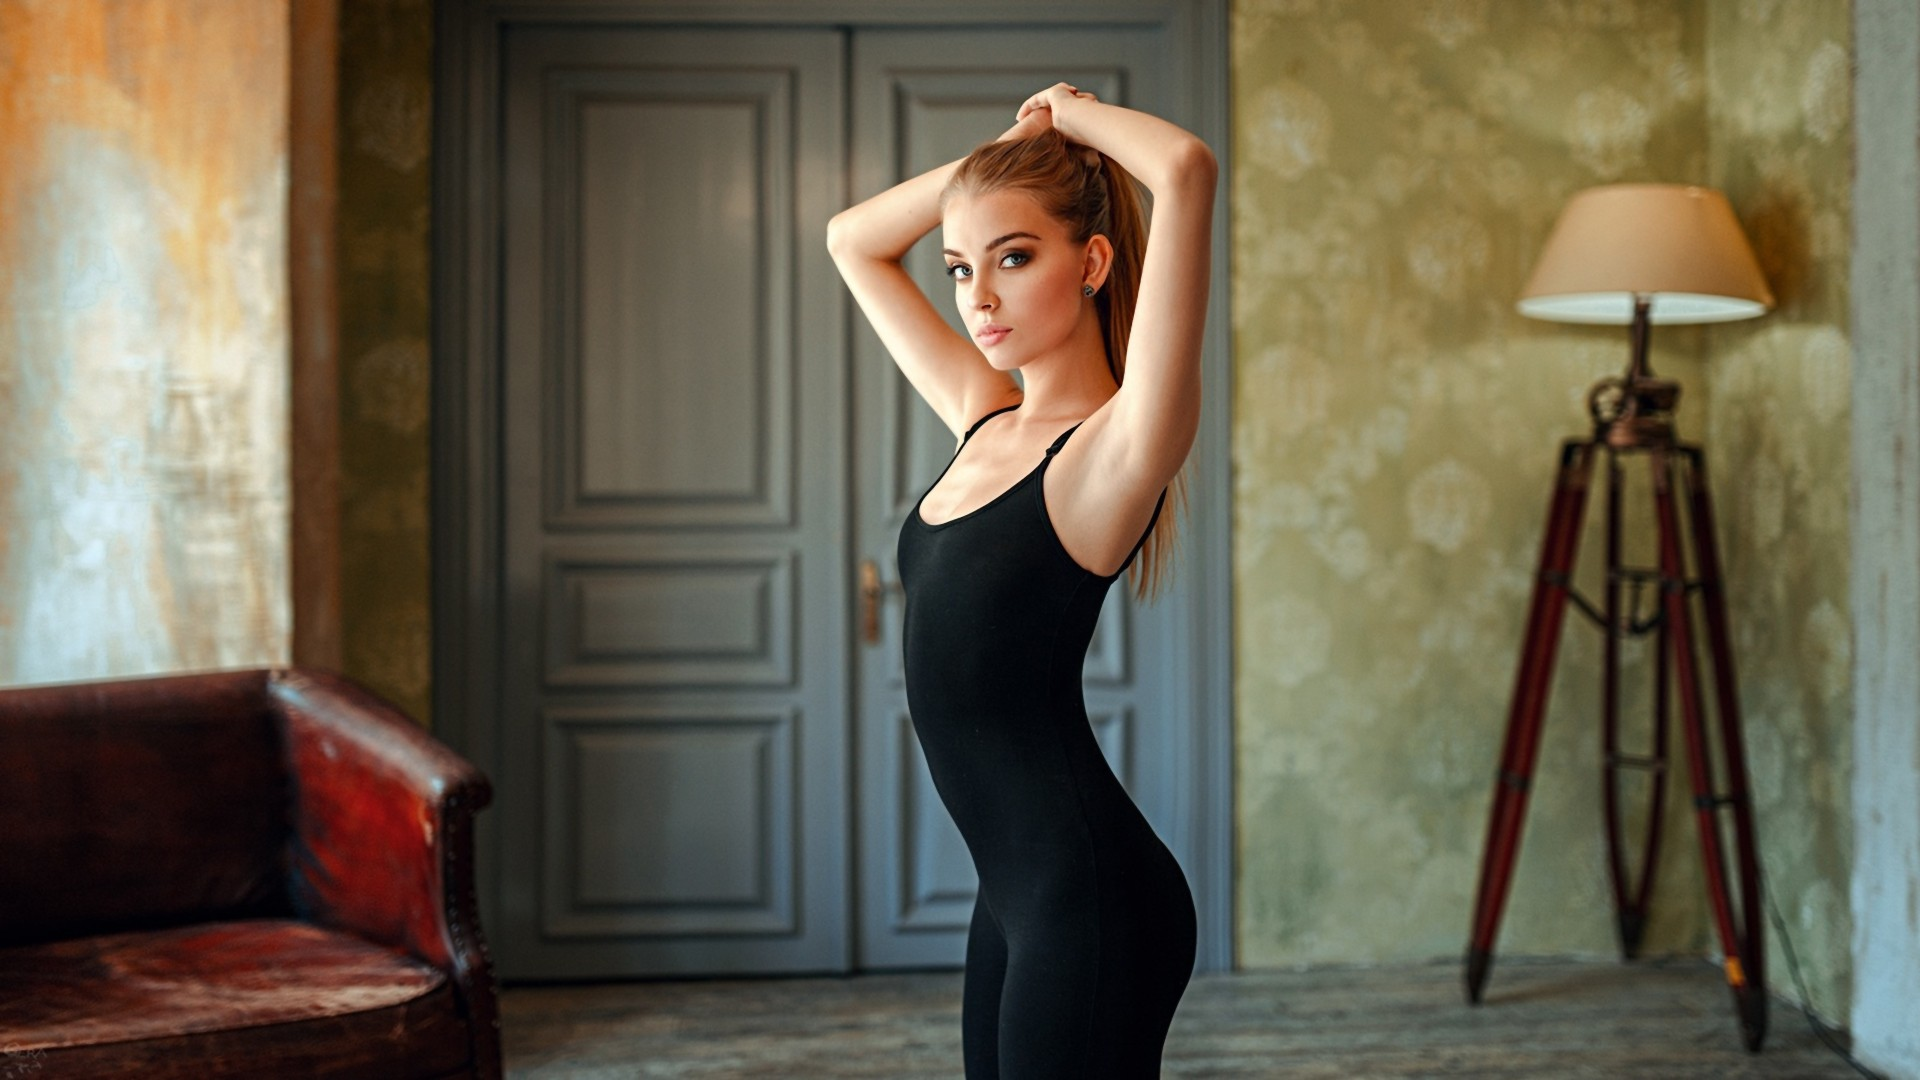 People 1920x1080 women blonde hands on head armpits ass portrait looking at viewer Georgy Chernyadyev Victoria Pichkurova leotard lamp couch door small boobs onesie women indoors indoors arms up